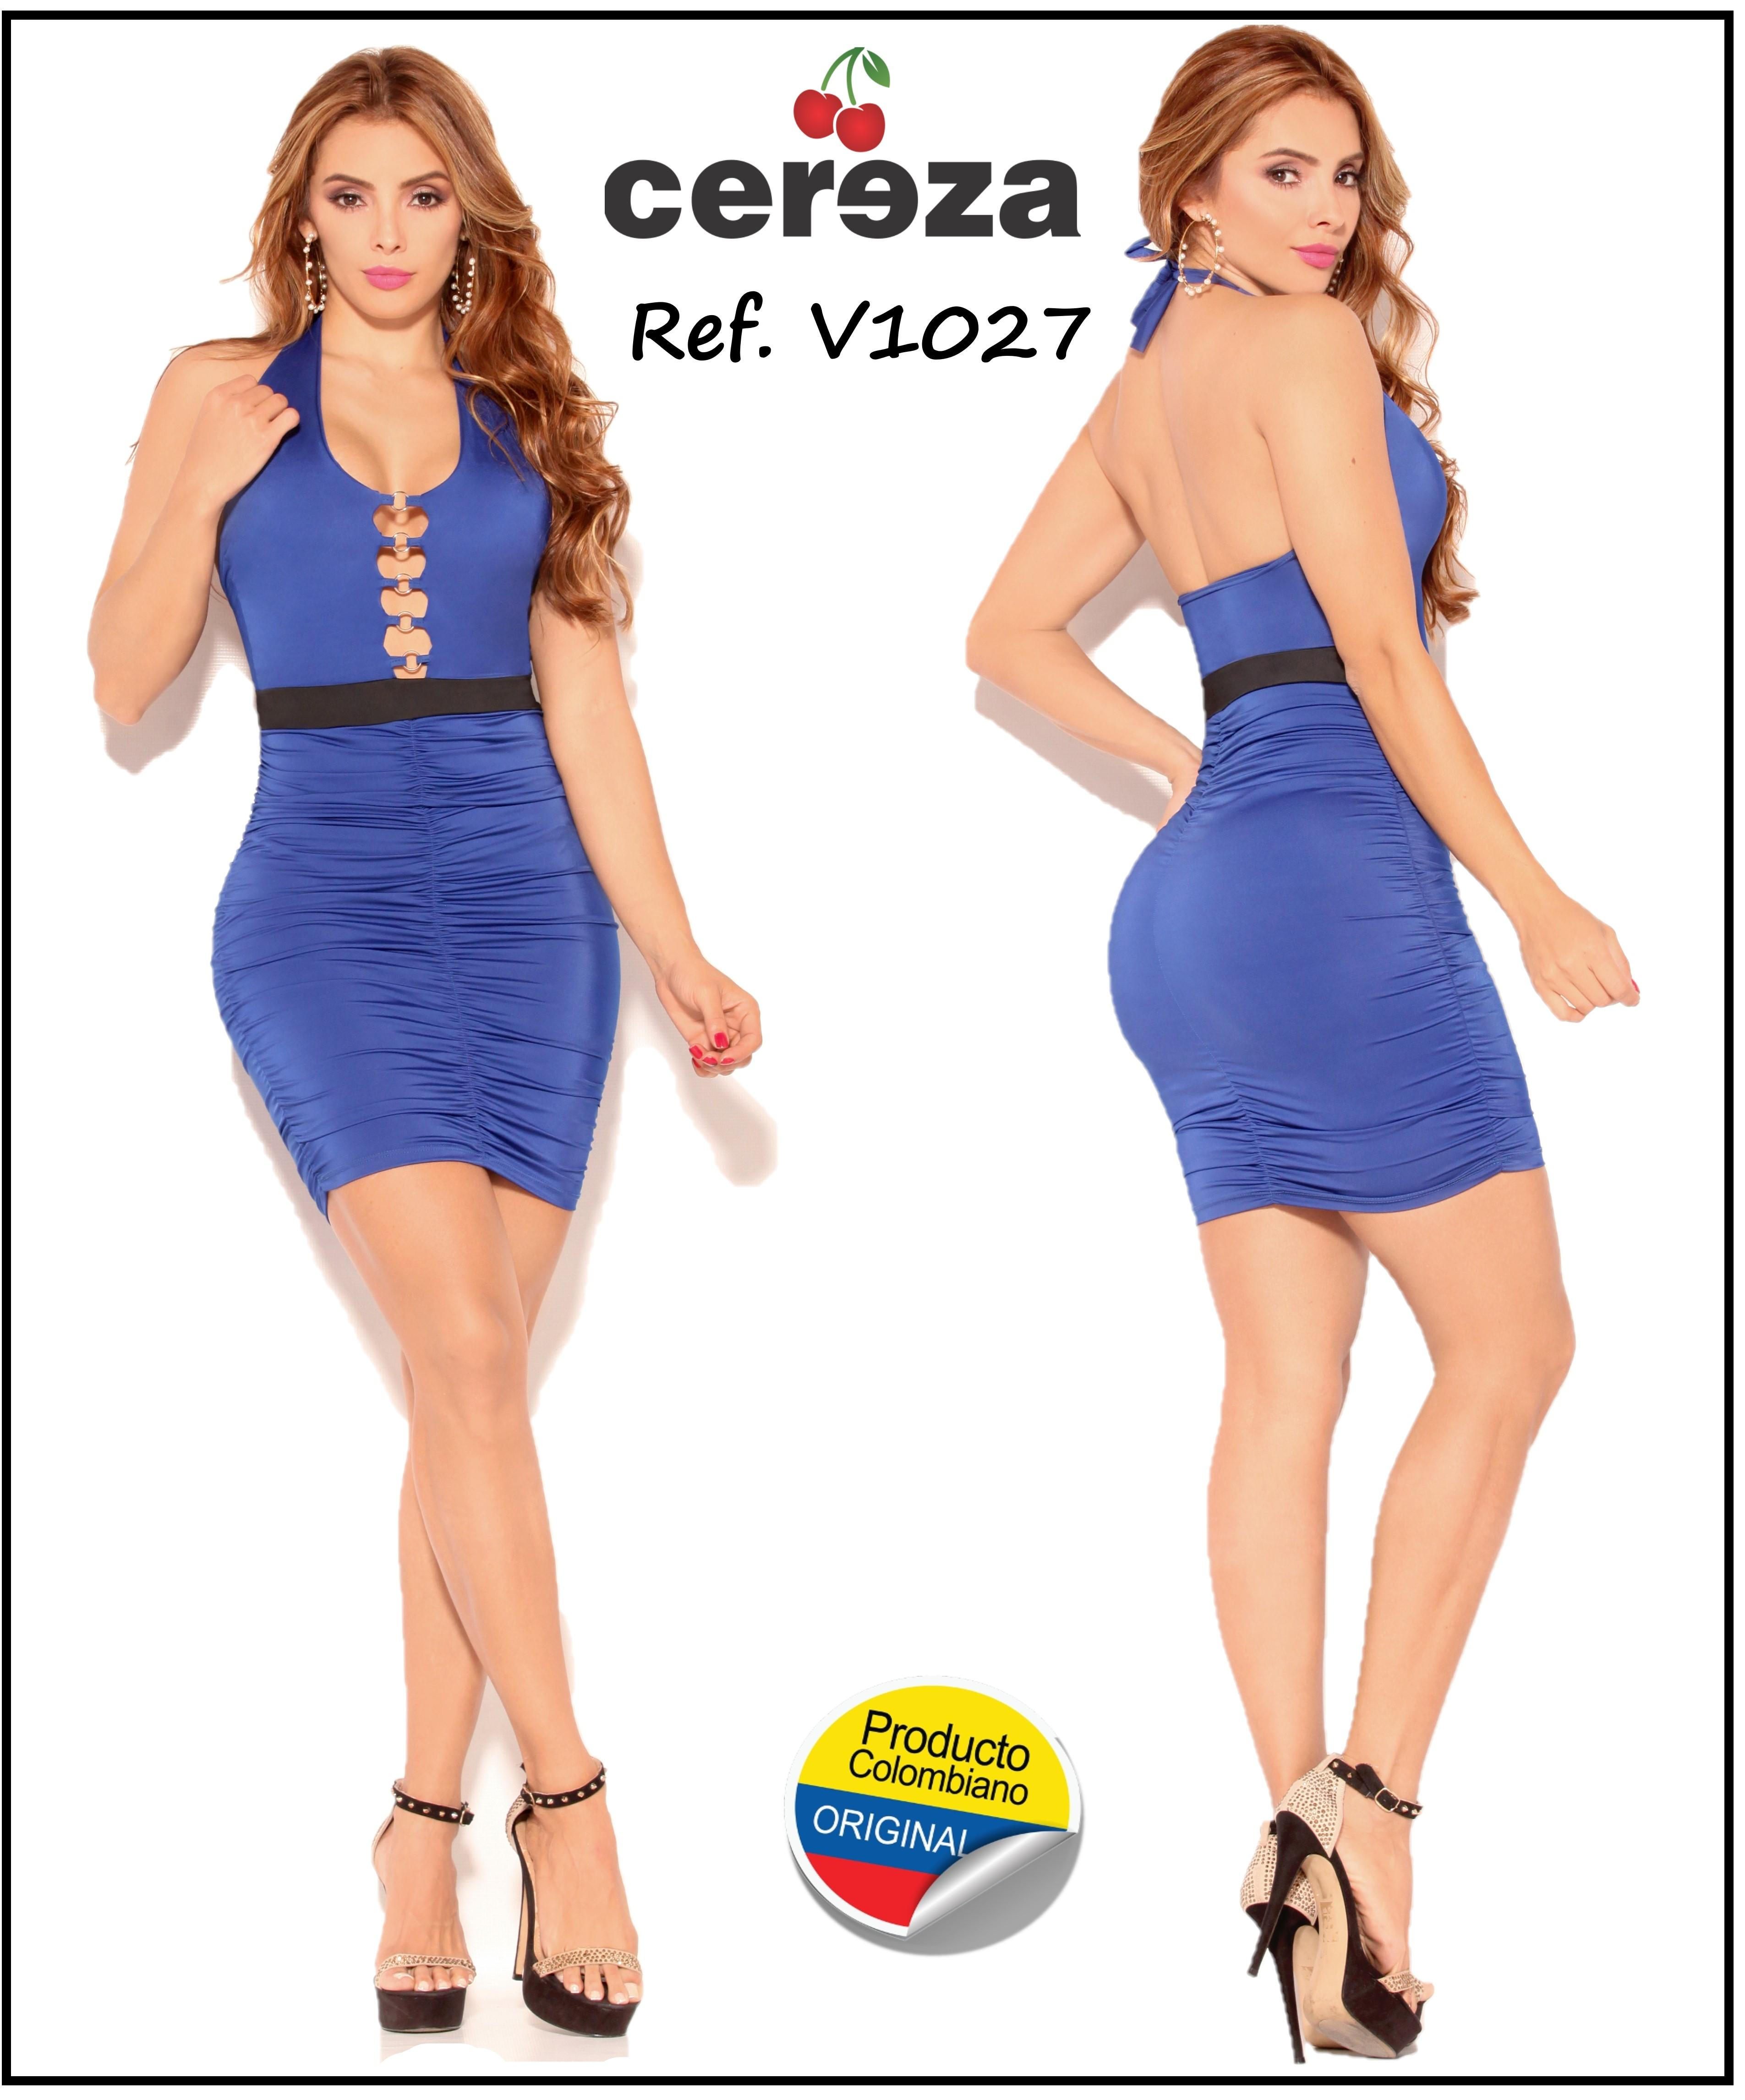 Fantastic Colombian Dress With Beautiful Open Back Design and detail on the neckline. Brand CEREZA